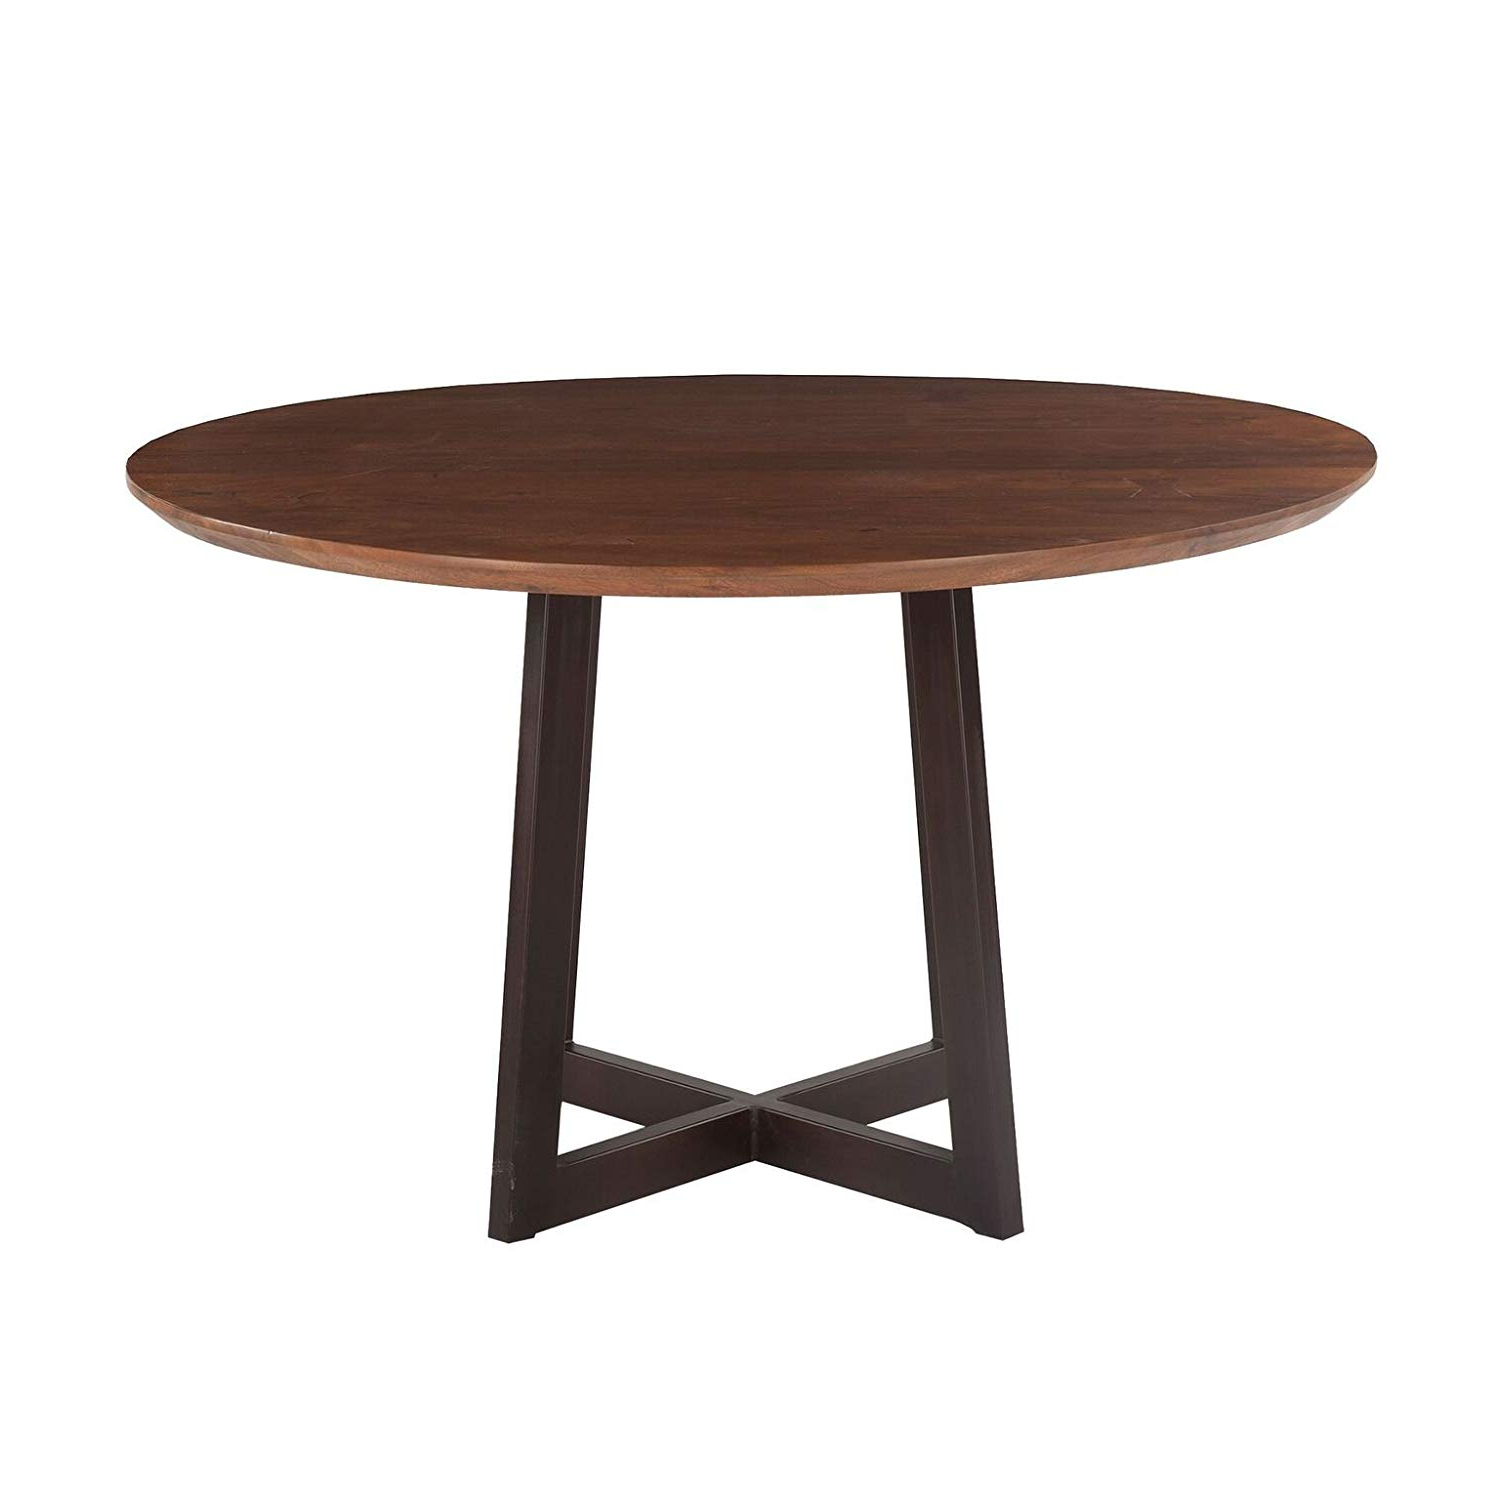 Acacia Dining Tables With Black X Legs Within Best And Newest Amazon – World Interiors Acacia Wood And Iron Round (View 11 of 30)